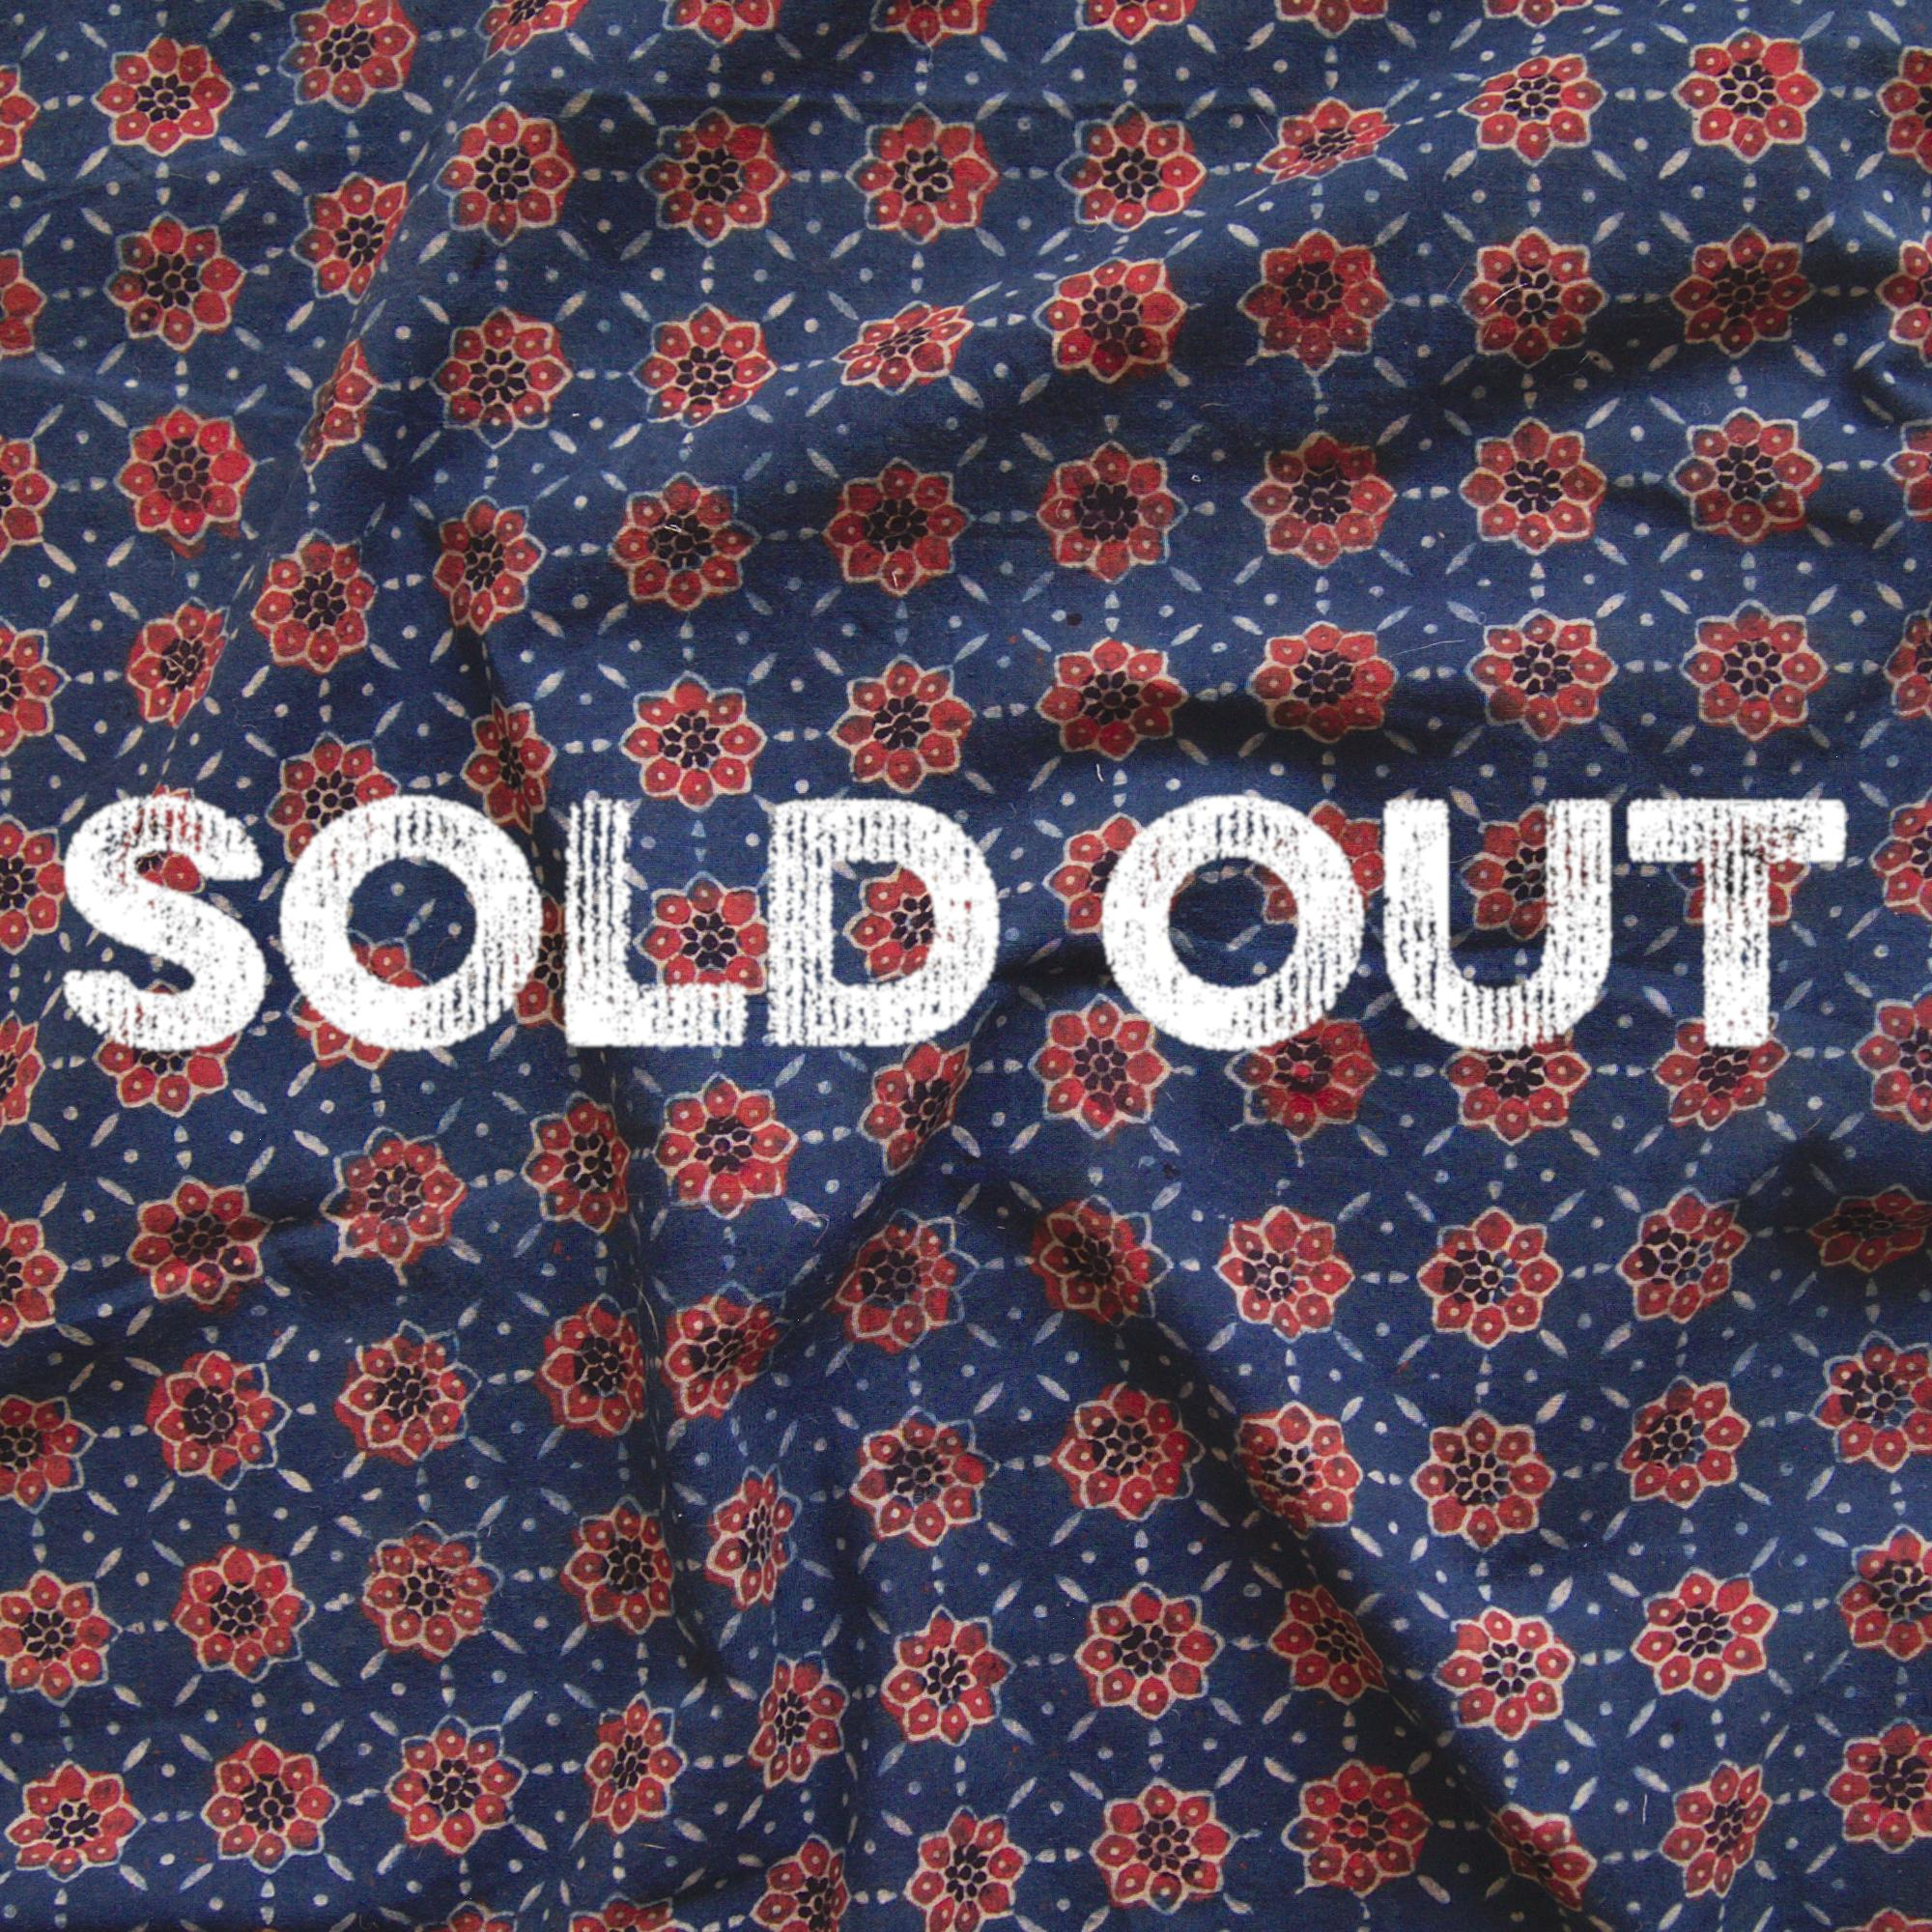 Block Printed Fabric, Cotton, Ajrak Design: Indigo Blue Base, Madder Red Flower. Contrast